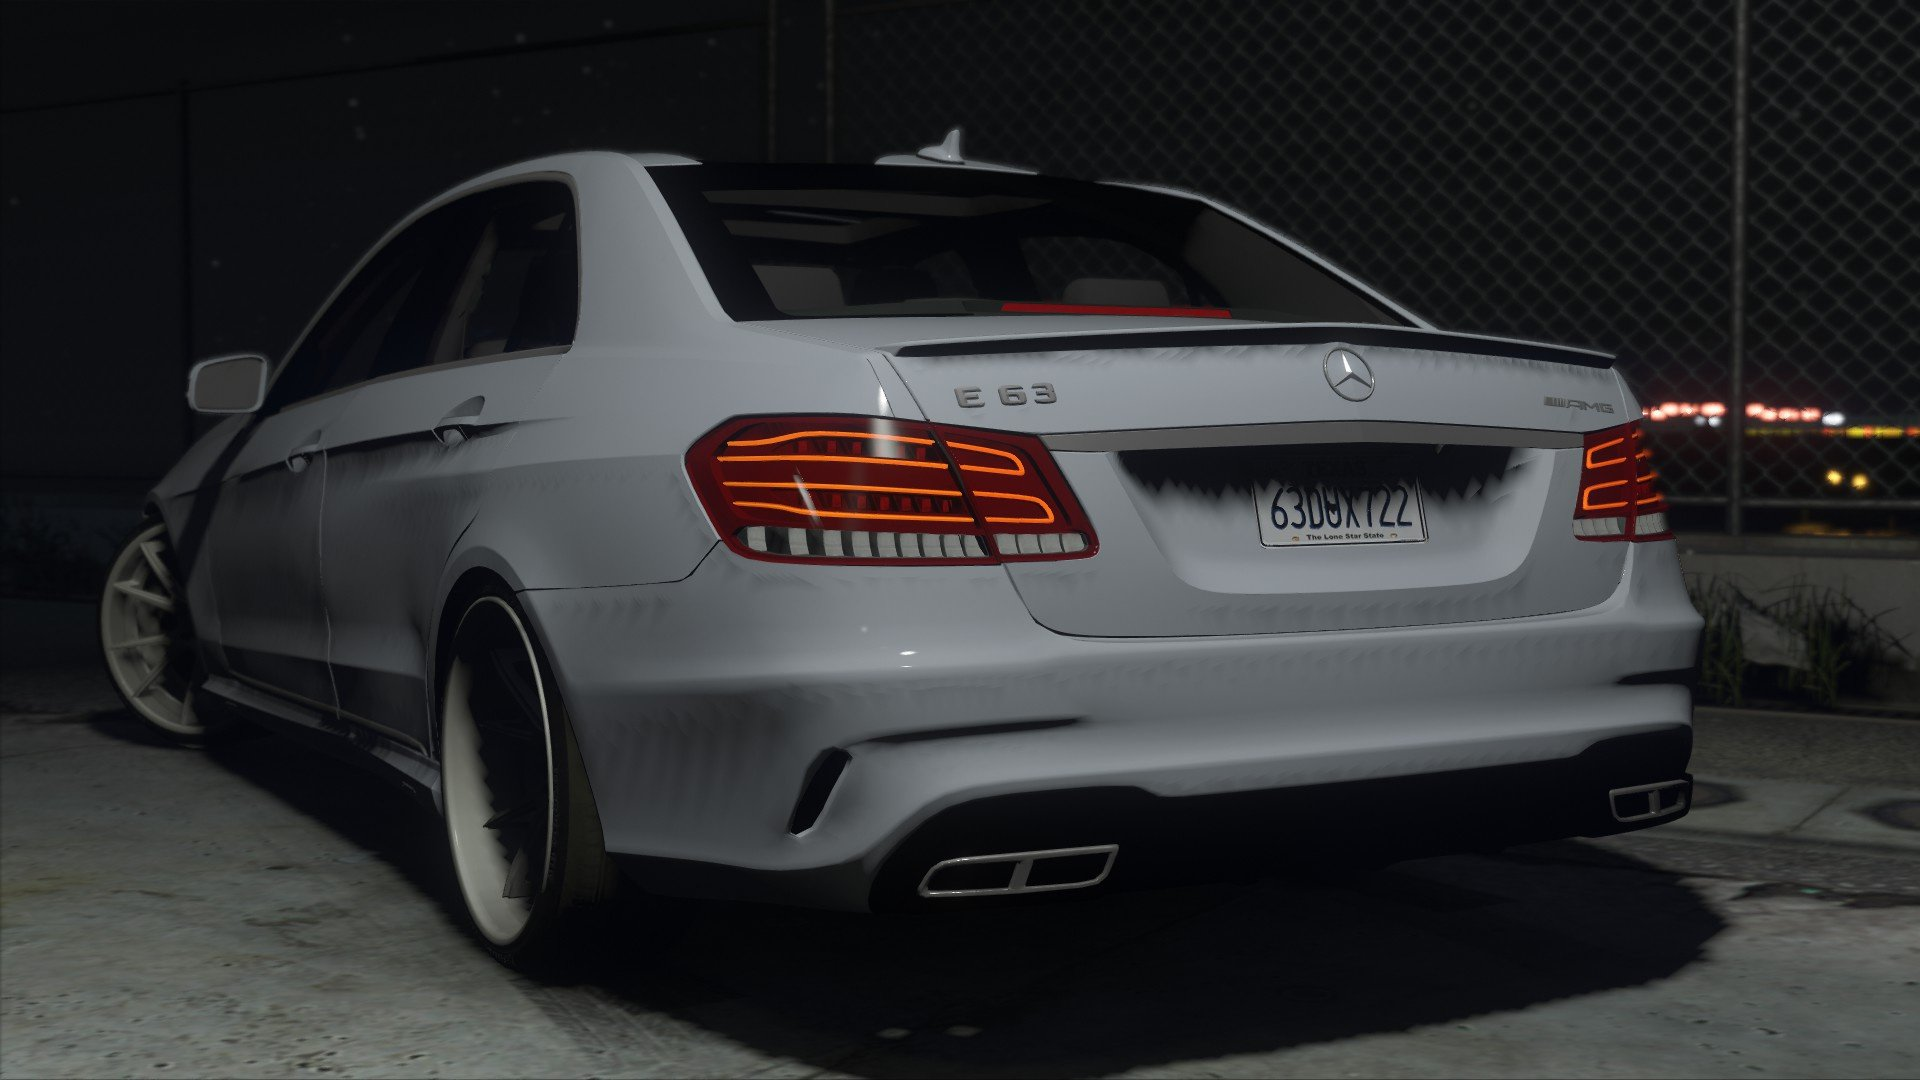 Mercedes benz e63 amg gta5 for Mercedes benz e 63 amg